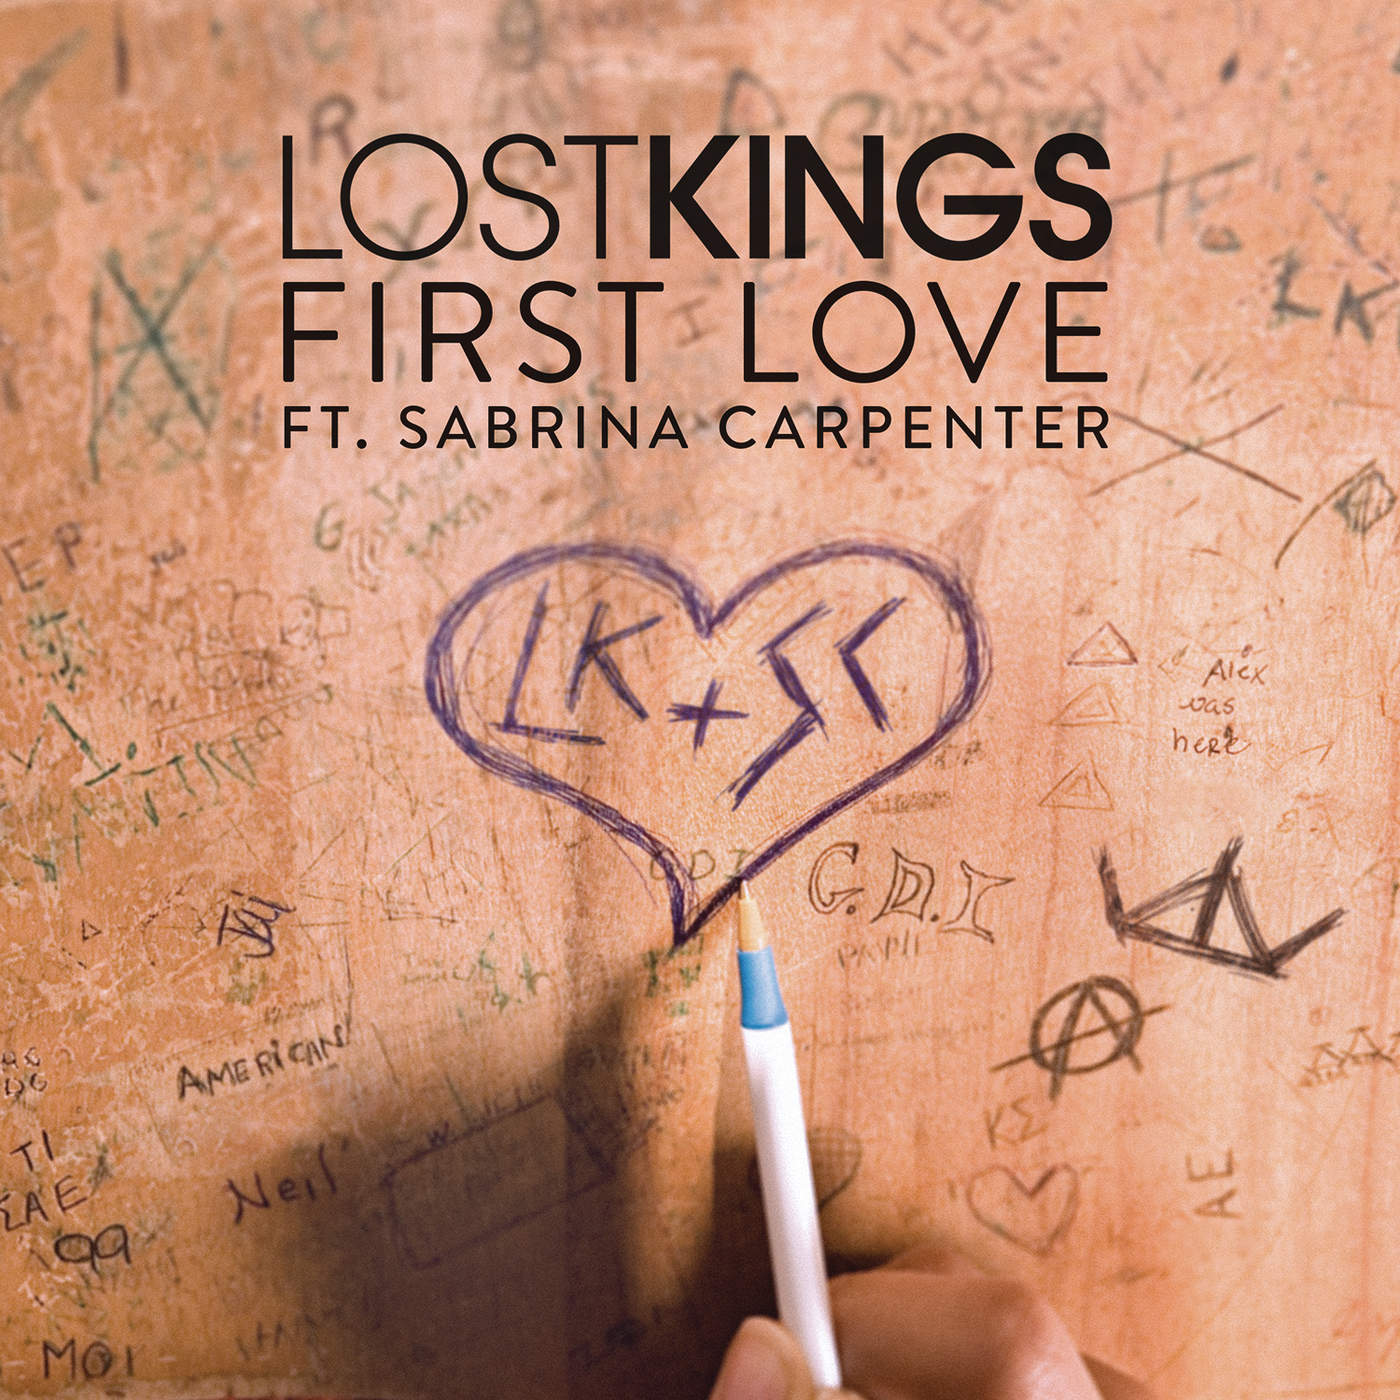 Lost Kings - First Love (feat. Sabrina Carpenter) - Single